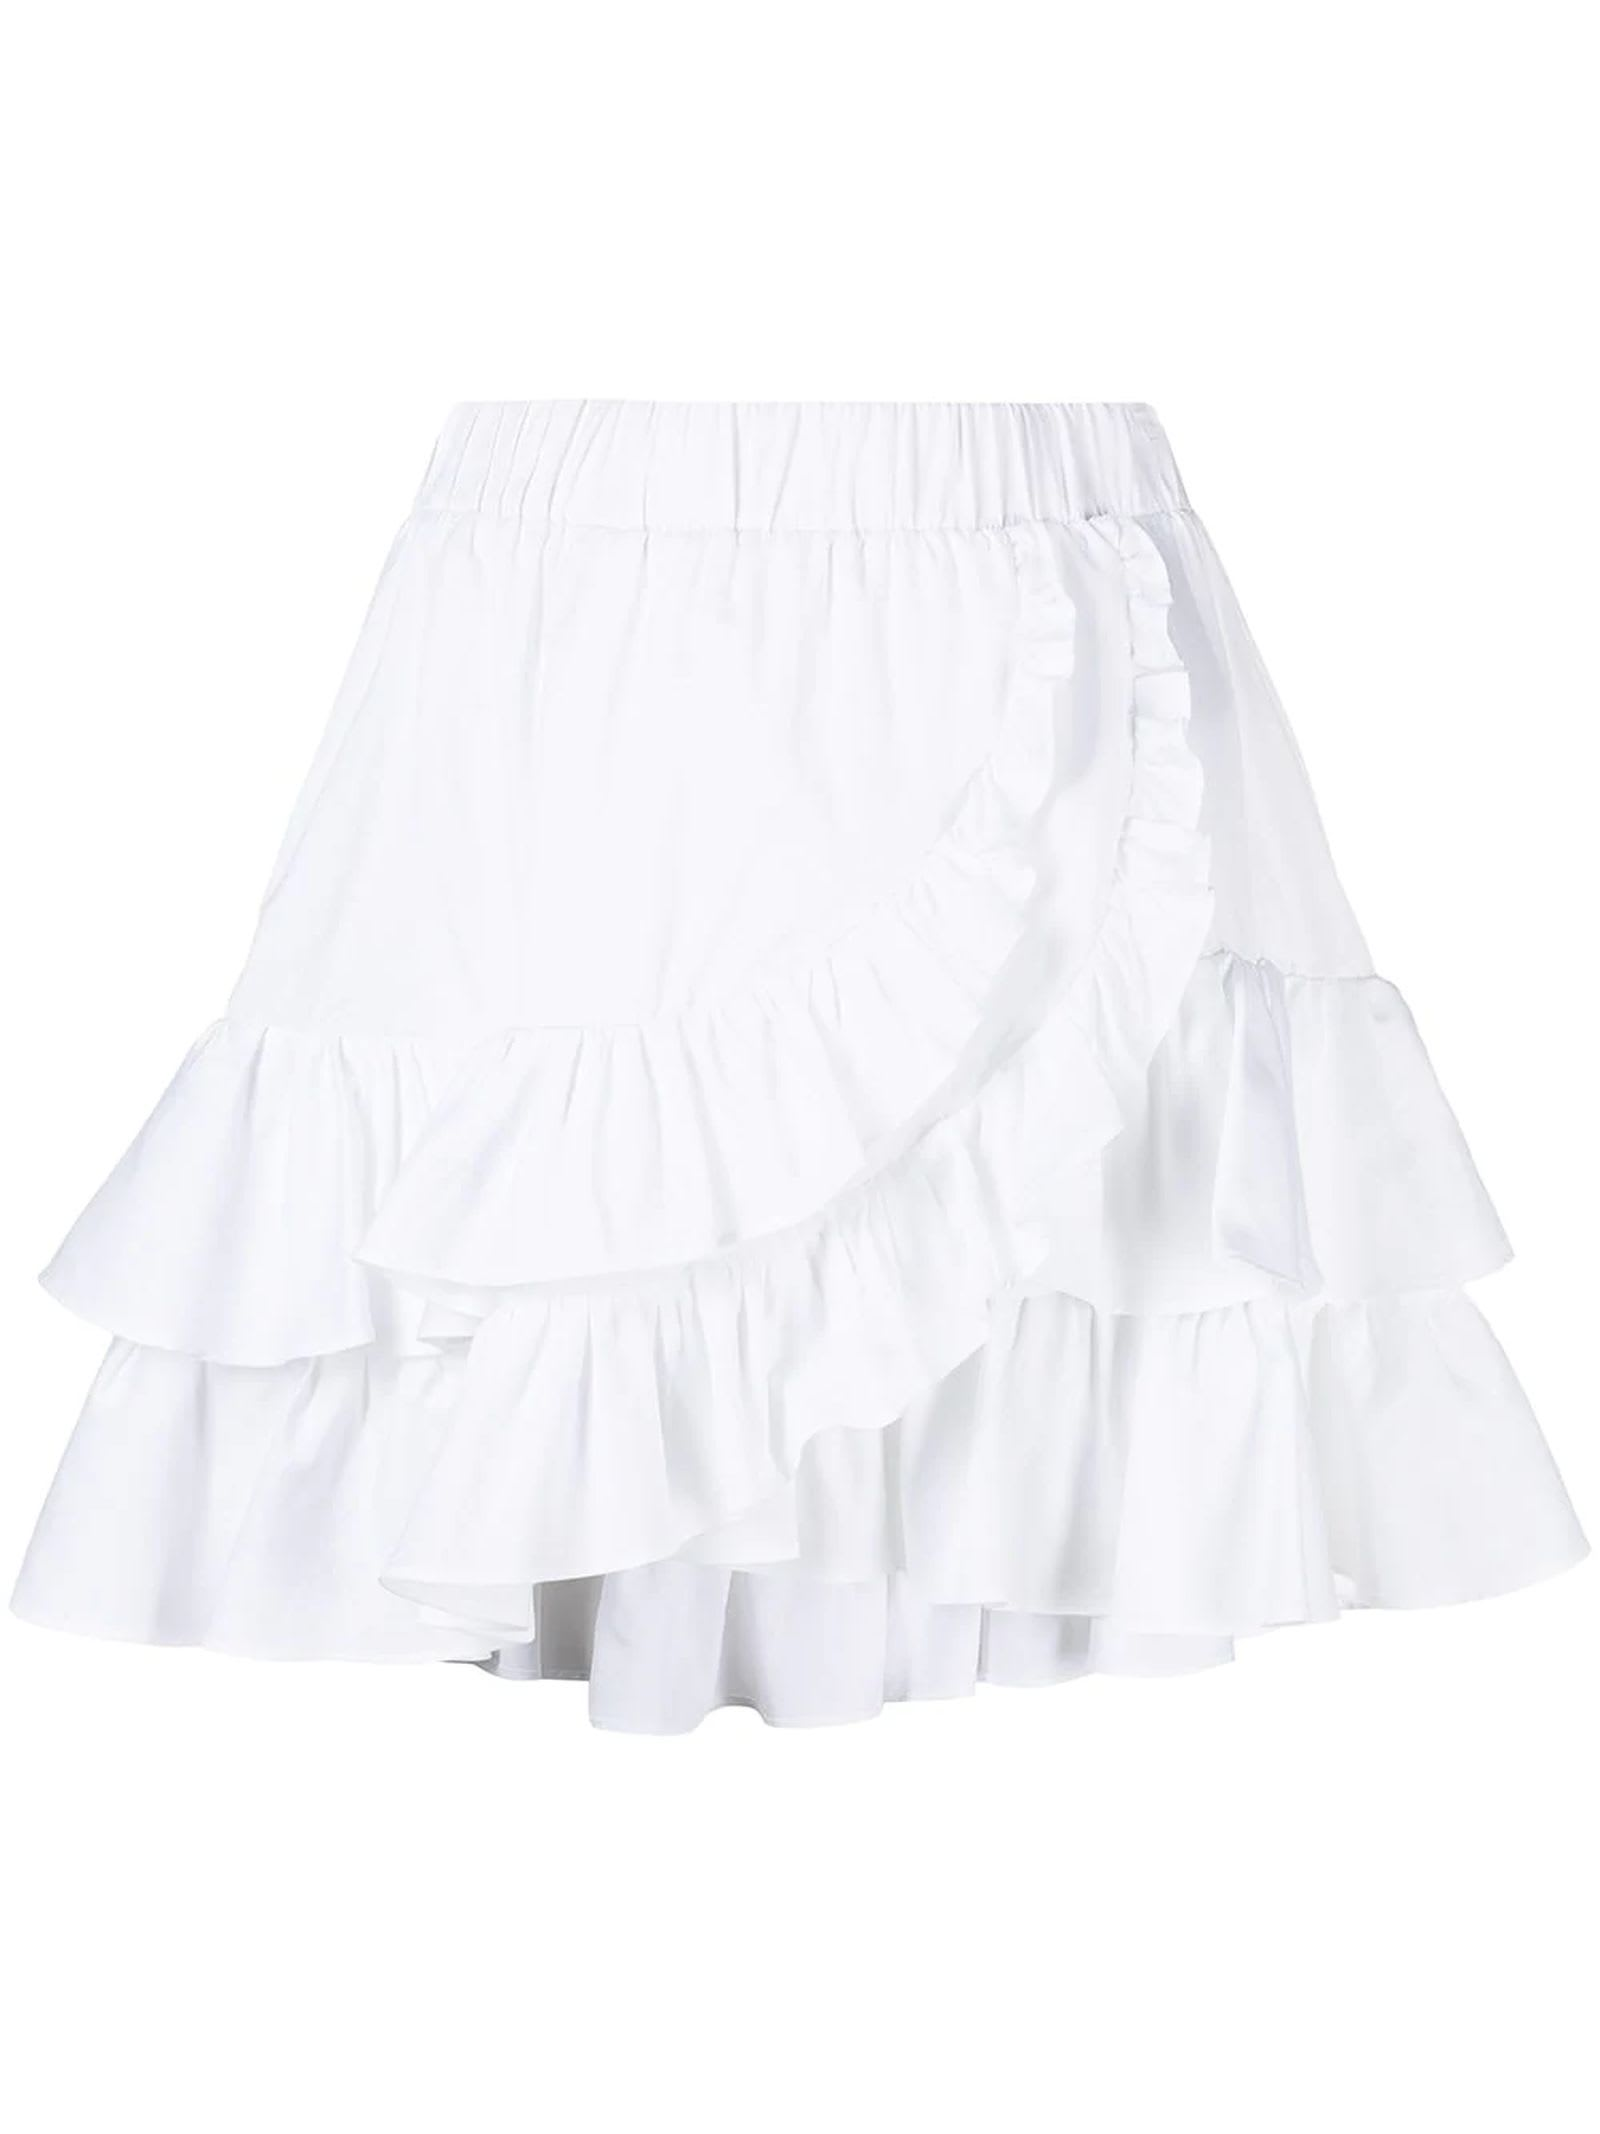 Federica Tosi WHITE COTTON AND SILK BLEND SKIRT